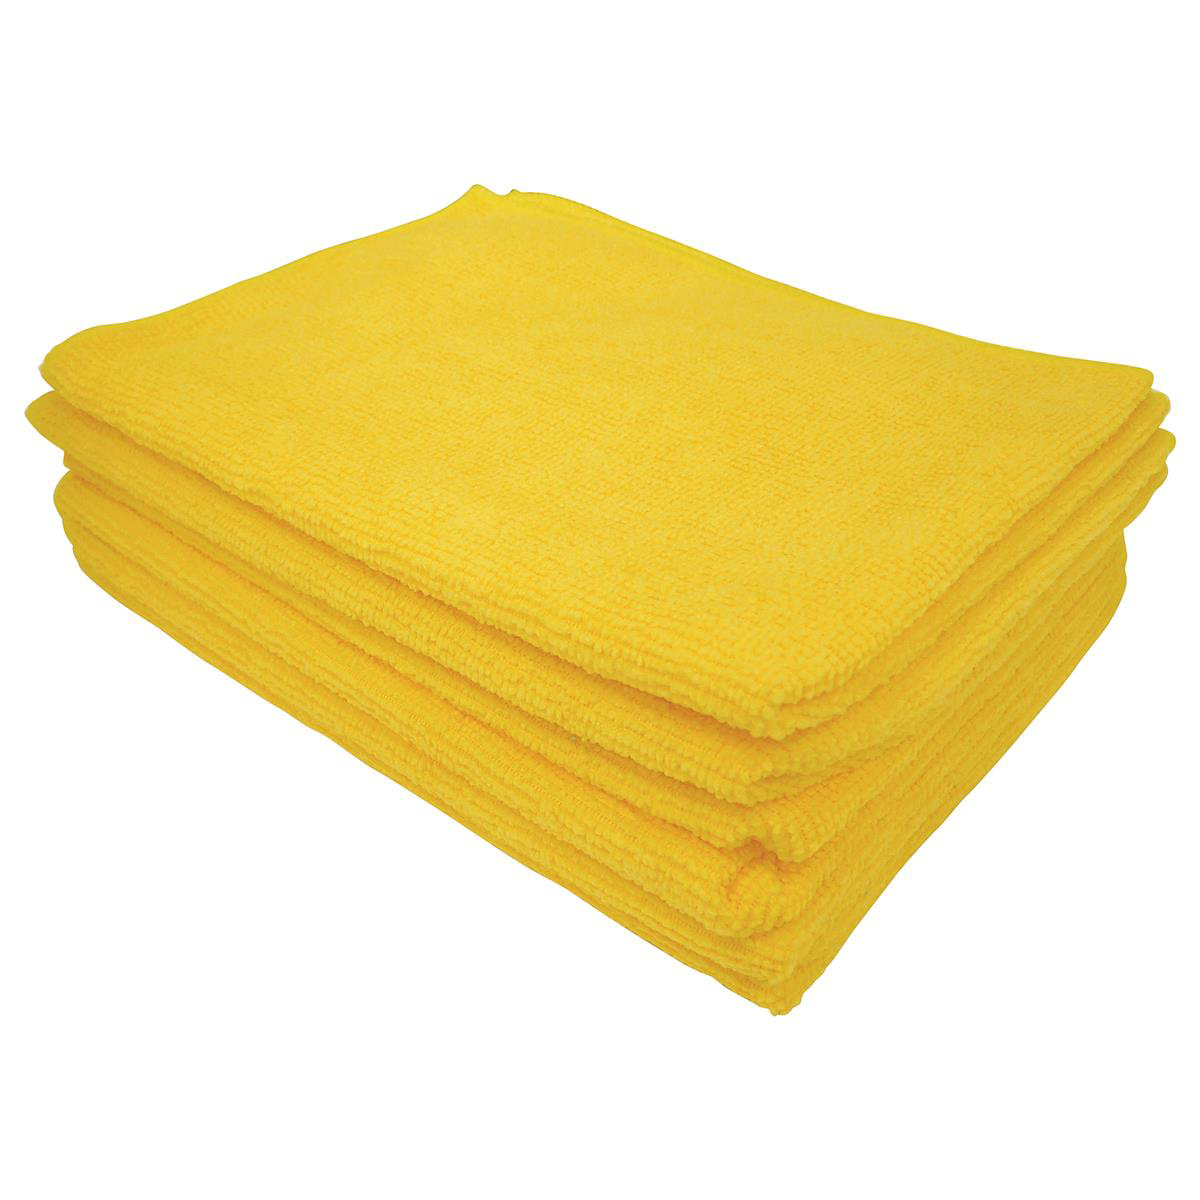 5 Star Facilities Microfibre Cleaning Cloths Colour-coded Dry or Damp Multi-surface Yellow [Pack 6]